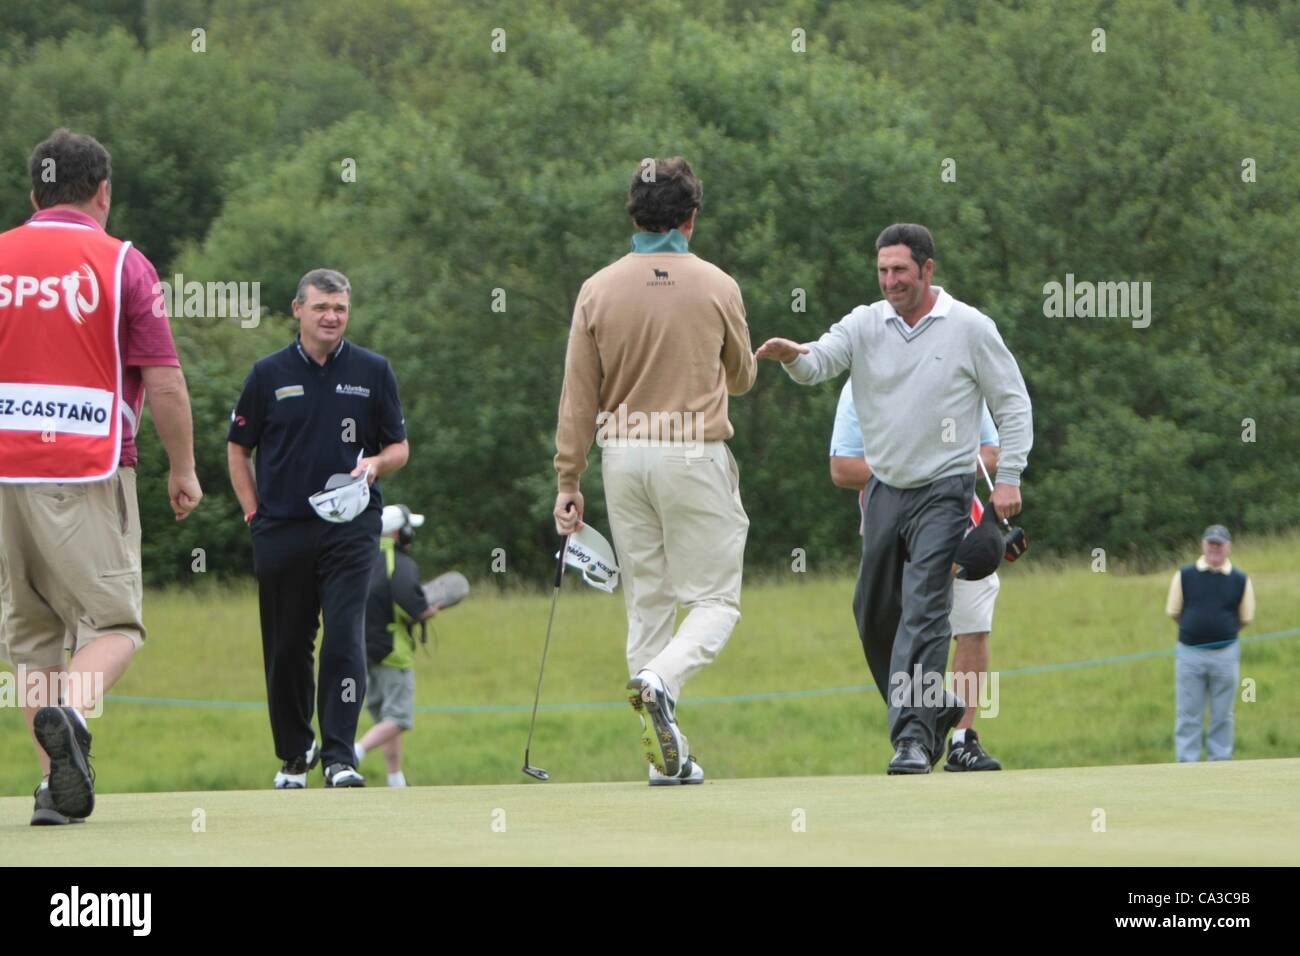 31.05.2012 Newport Wales. Match 18 end their round on the 10th hole on Day 1 of the ISPS Handa Wales Open from Celtic - Stock Image